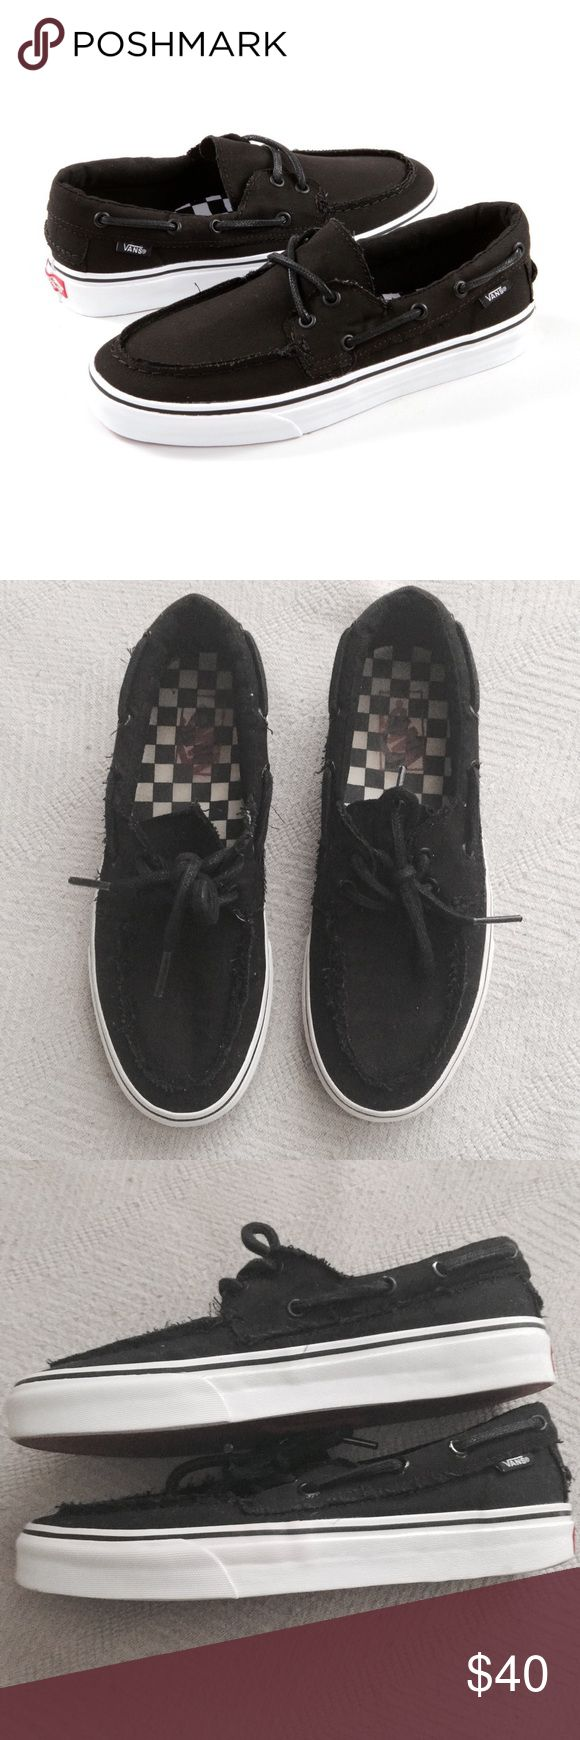 Men's Vans Zapato Del Barco Casual Slip On Sneaker Unisex. Men's 8 or women's 9.5. Traditional boat shoe. Frayed edges. In excellent pre owned condition, like new.   •USE OFFER FEATURE TO NEGOTIATE  •BUNDLE TO SAVE  •NO OUTSIDE TRANSACTIONS •NO TRADES Vans Shoes Sneakers